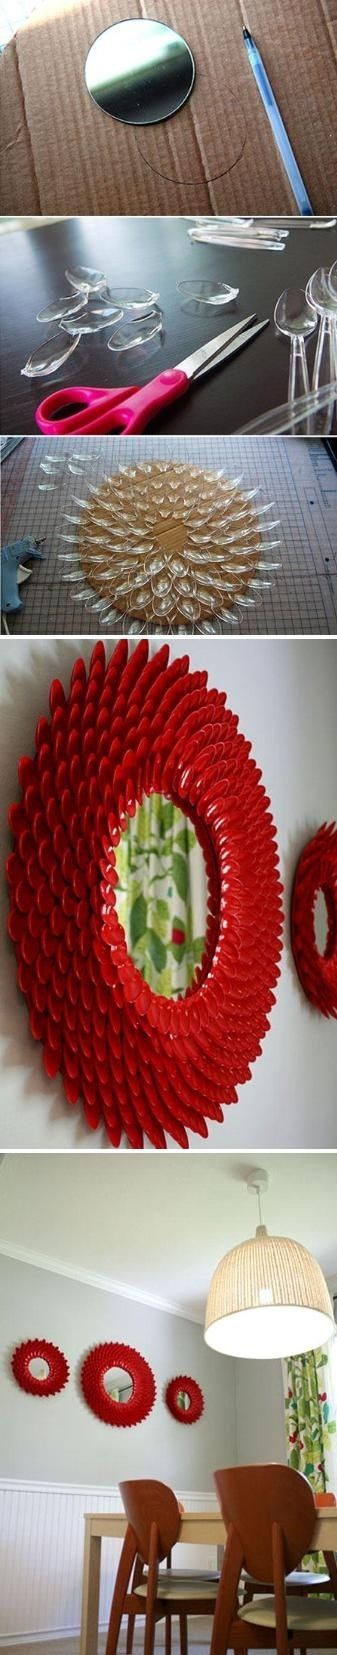 DIY Mirror From Plastic Spoons diy craft crafts craft ideas easy crafts diy ideas diy crafts diy idea diy decor easy diy craft decorations home crafts craft mirror diy mirrors